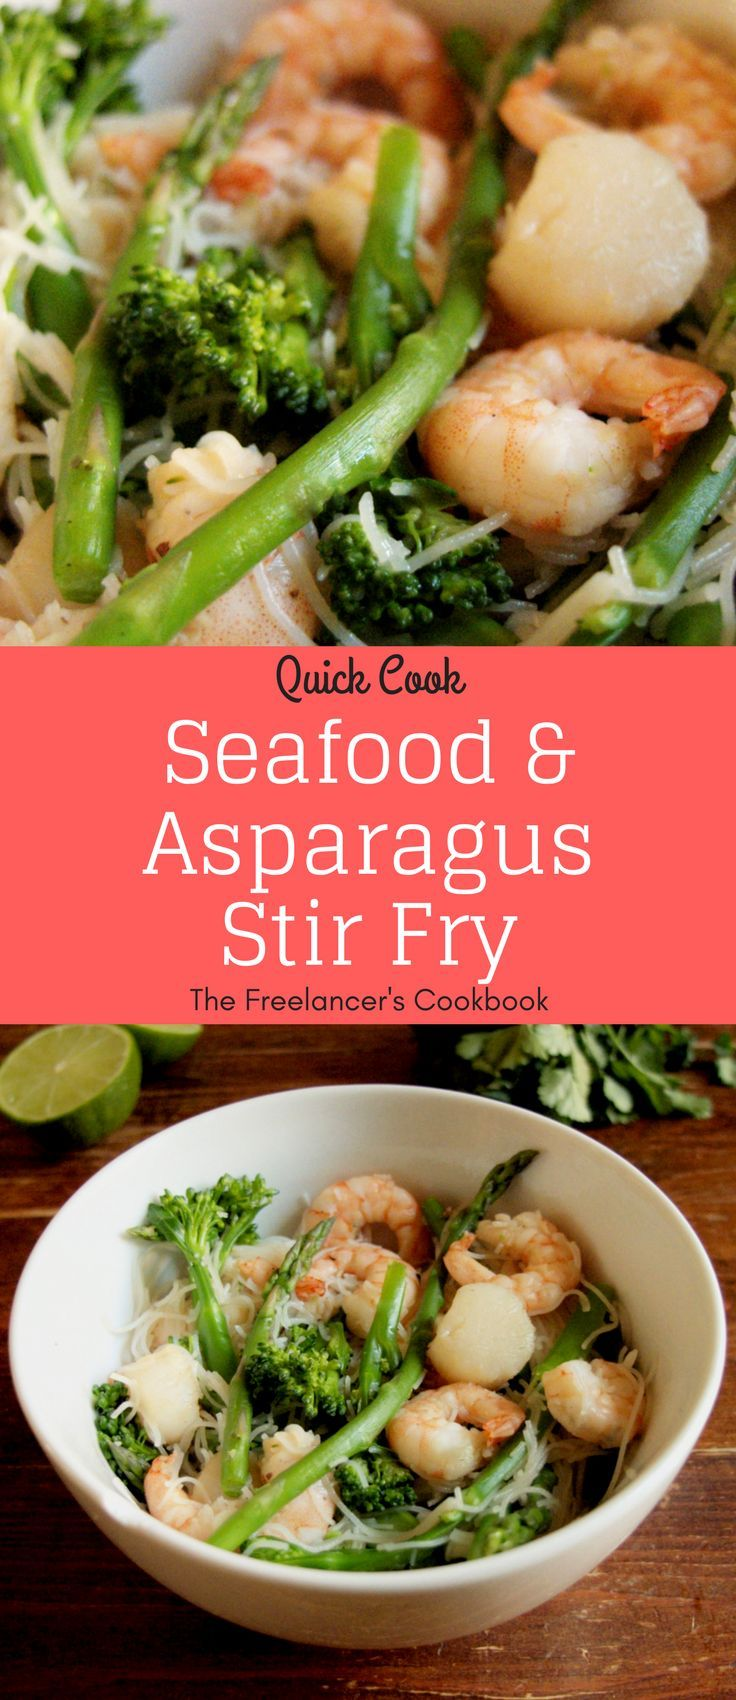 This quick seafood and asparagus stir fry is a perfect spring dish - with scallops, prawns, asparagus and tenderstem broccoli. As a bonus there's no chopping involved and you can make it in just 15 minutes.